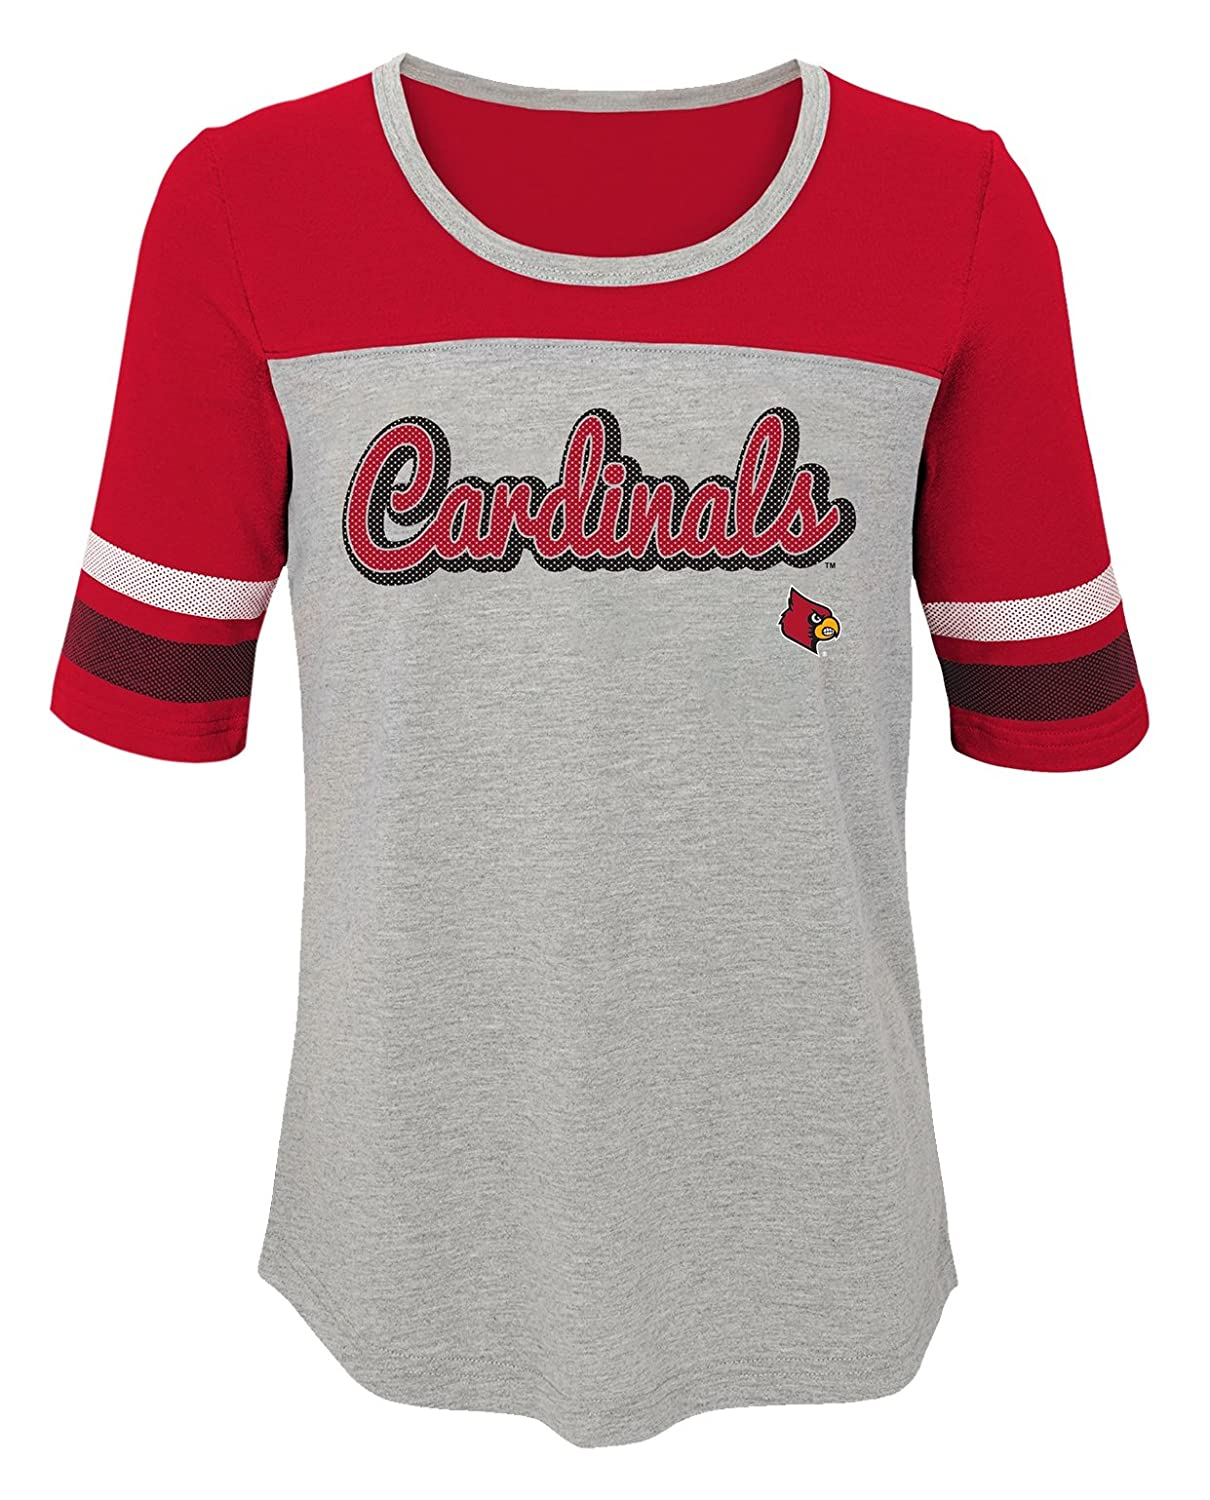 Youth Small 7-8 Dark Red NCAA by Outerstuff NCAA Louisville Cardinals Youth Girls Fan-Tastic Short Sleeve Tee